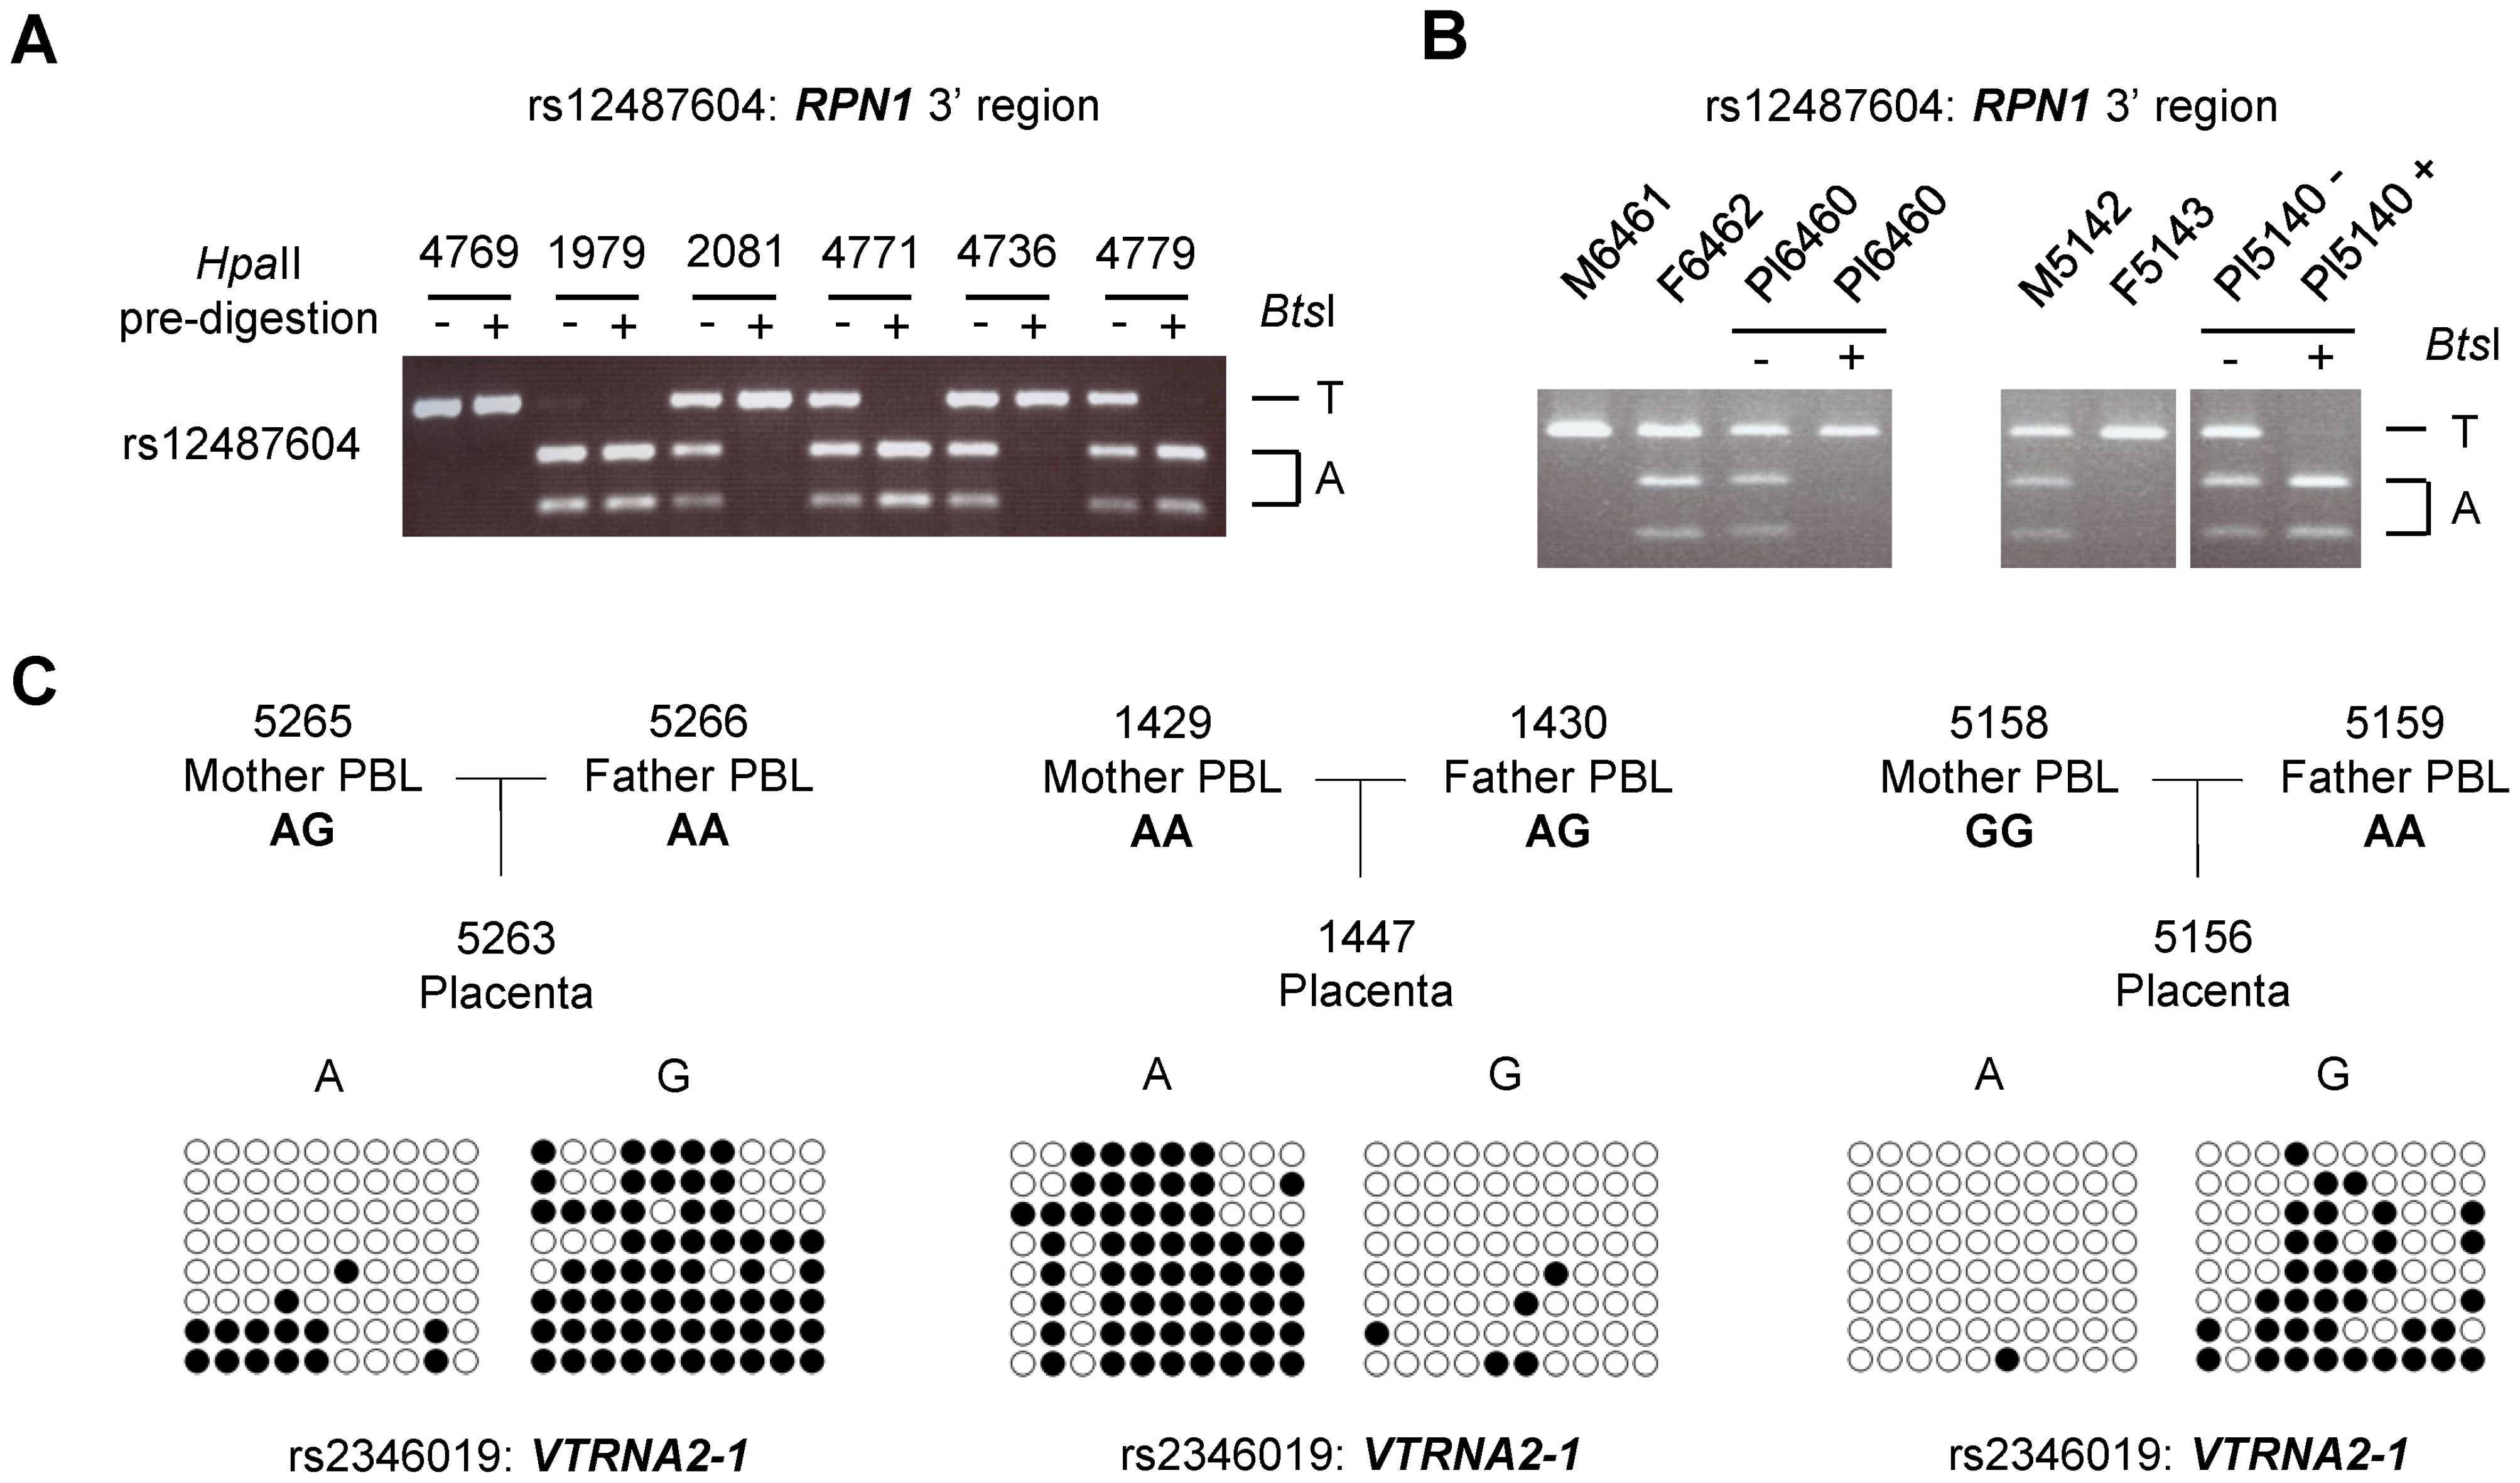 ASM downstream of the <i>RPN1</i> gene and in the <i>VTRNA2-1</i> gene is due to genomic imprinting with hypermethylation of the maternal allele.